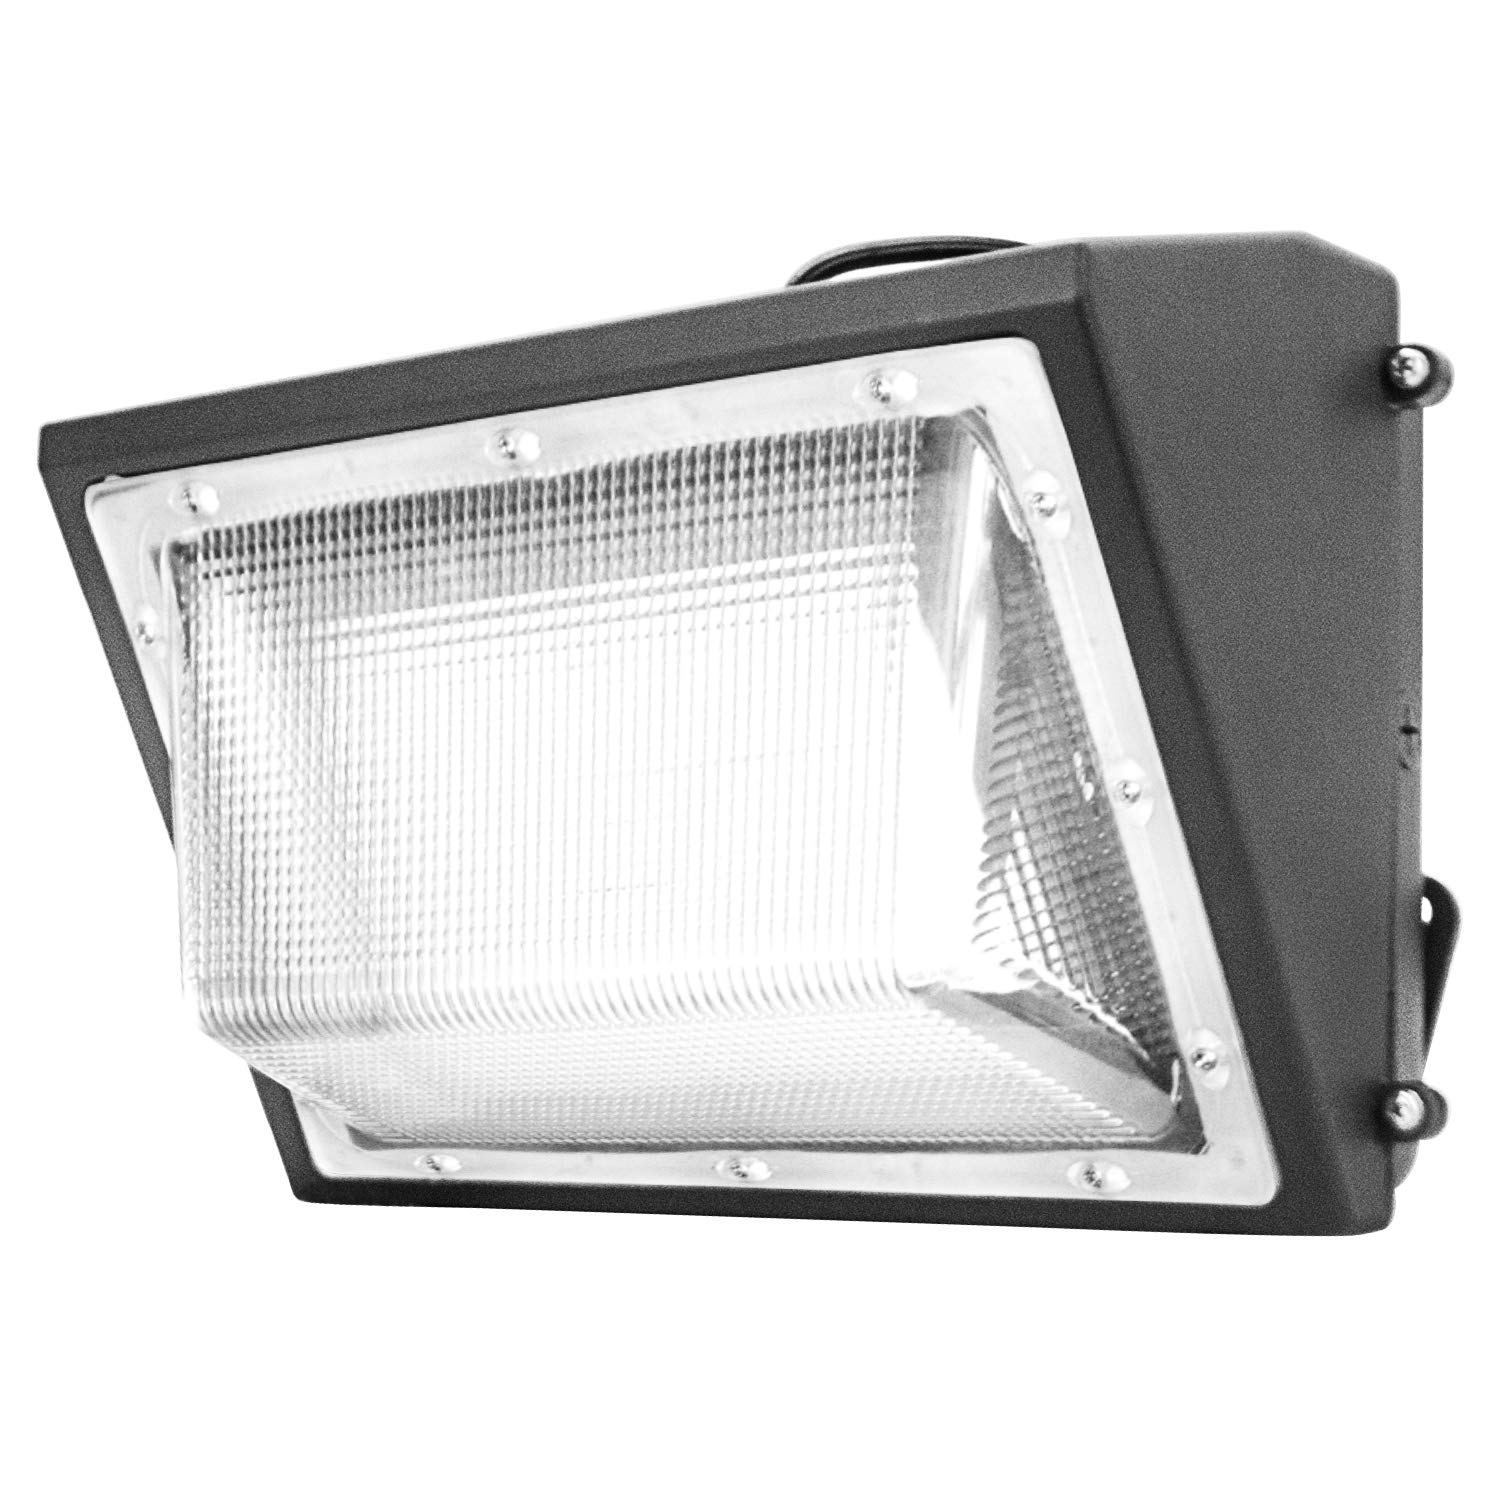 70W LED Wall Pack Light,ETL List,8500lm and 5500K Super Bright White Outdoor Wall Pack LED Security Light,250-300W HPS Metal Halide Bulb Replacement (70Watt) by WYZM